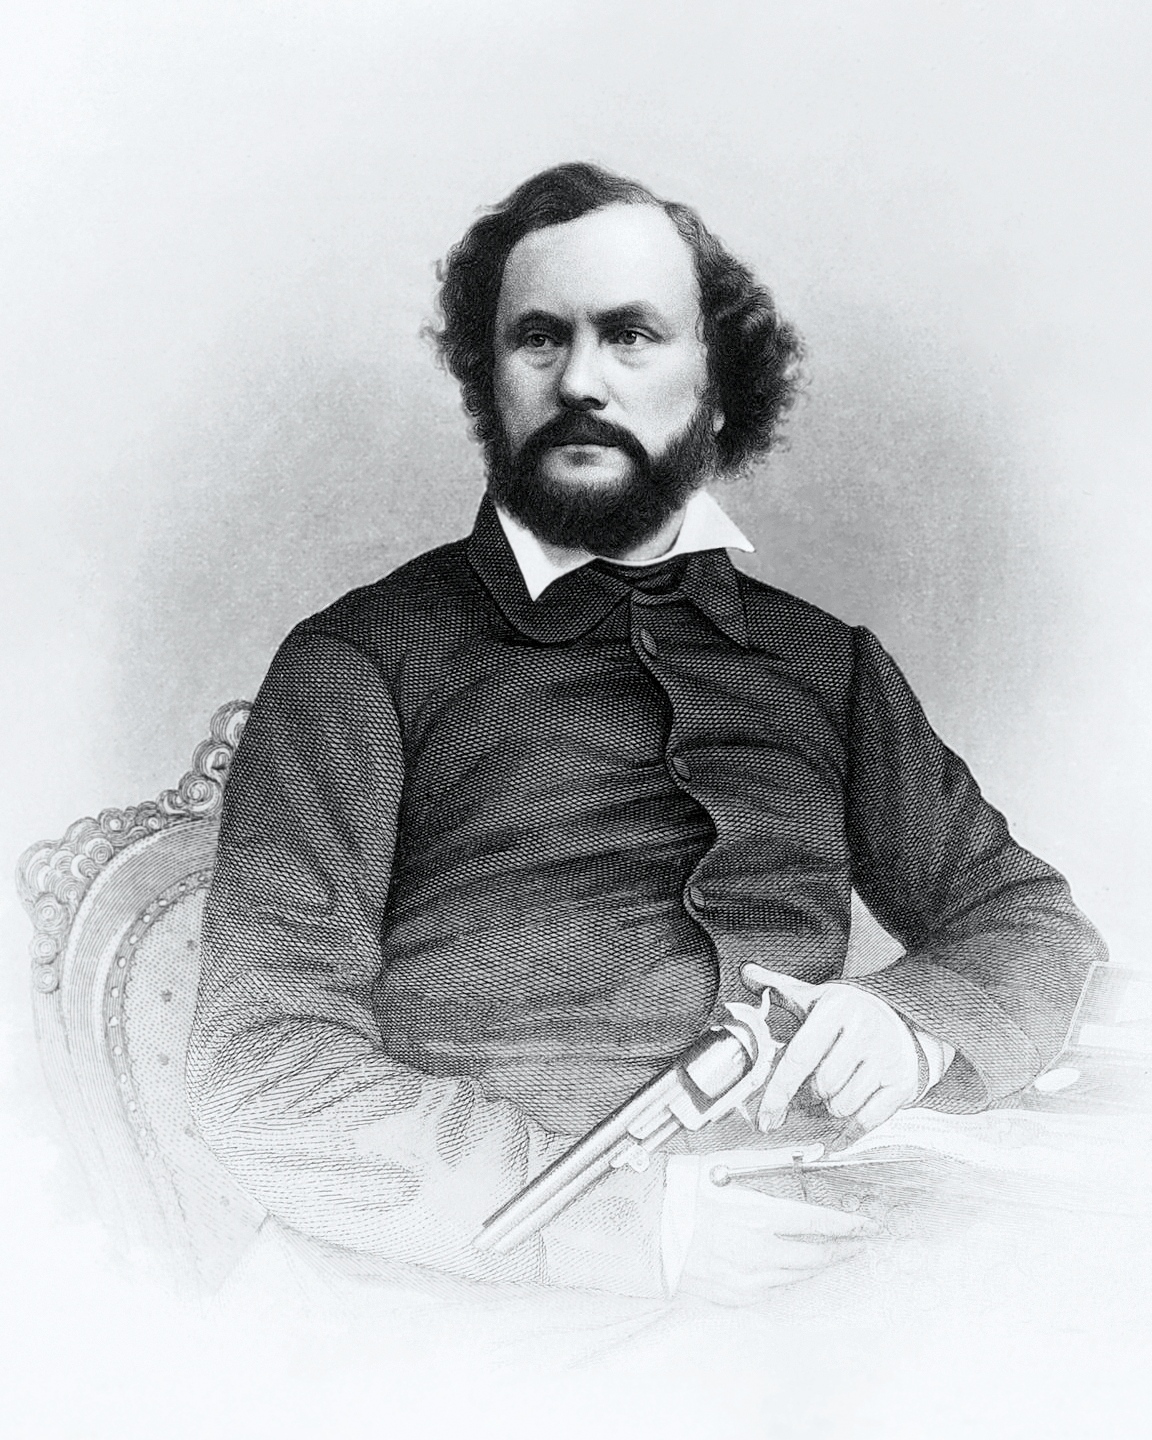 Samuel Colt holding one of his popular revolvers.